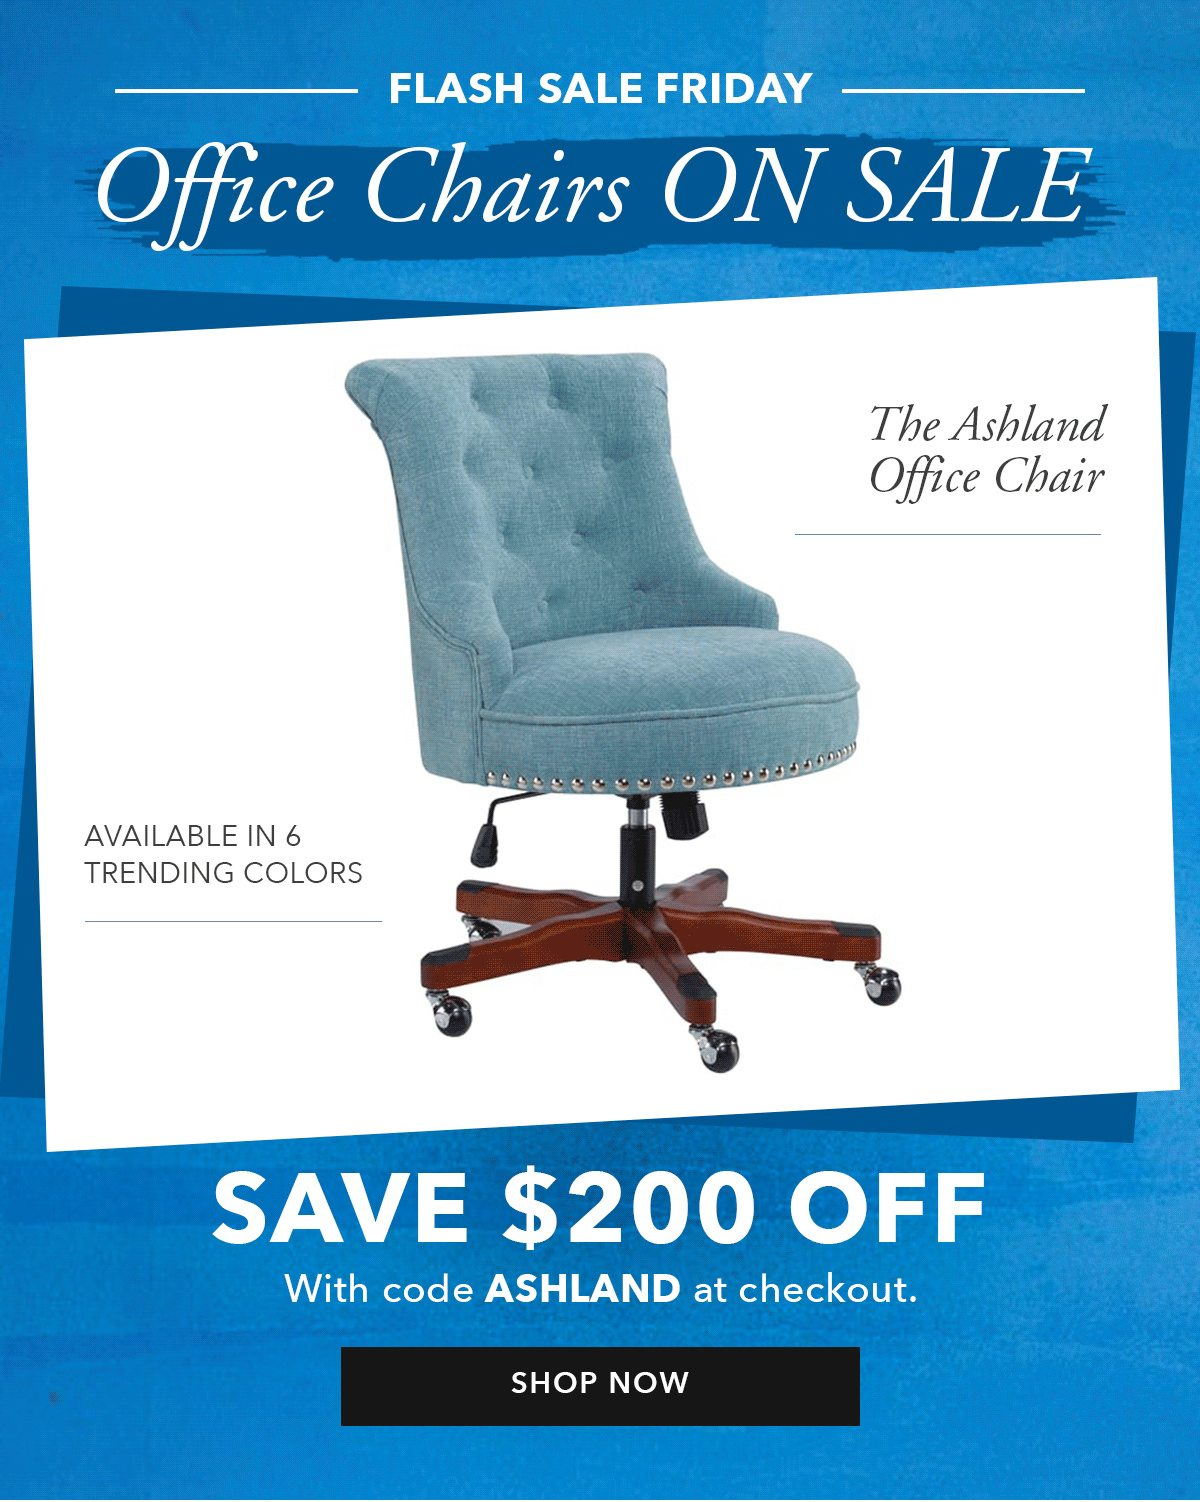 Office Chairs ON SALE. Save $200 off   SHOP NOW